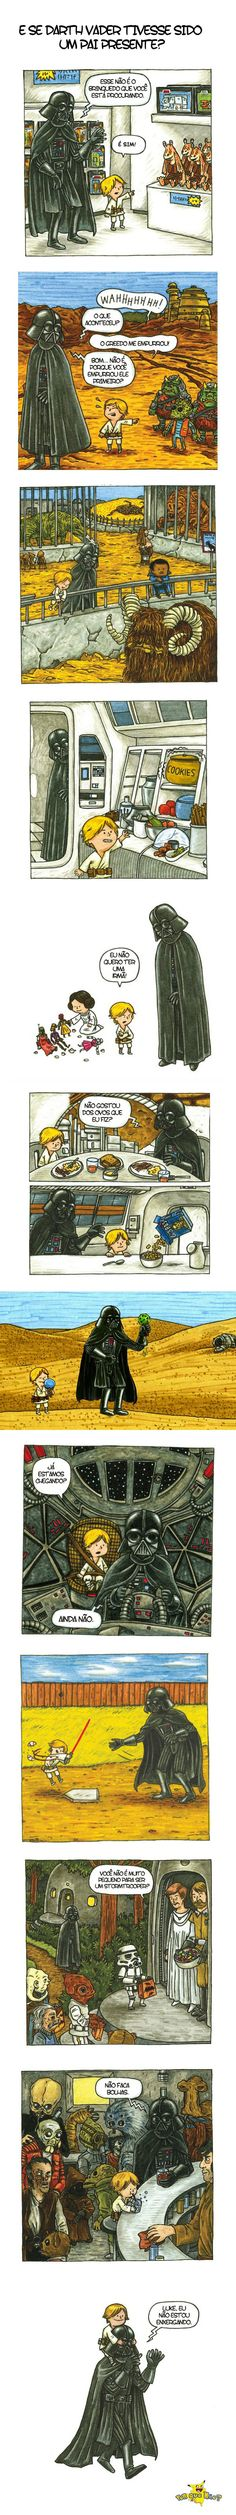 Parenting. Level: Darth Vader Pretty Funny